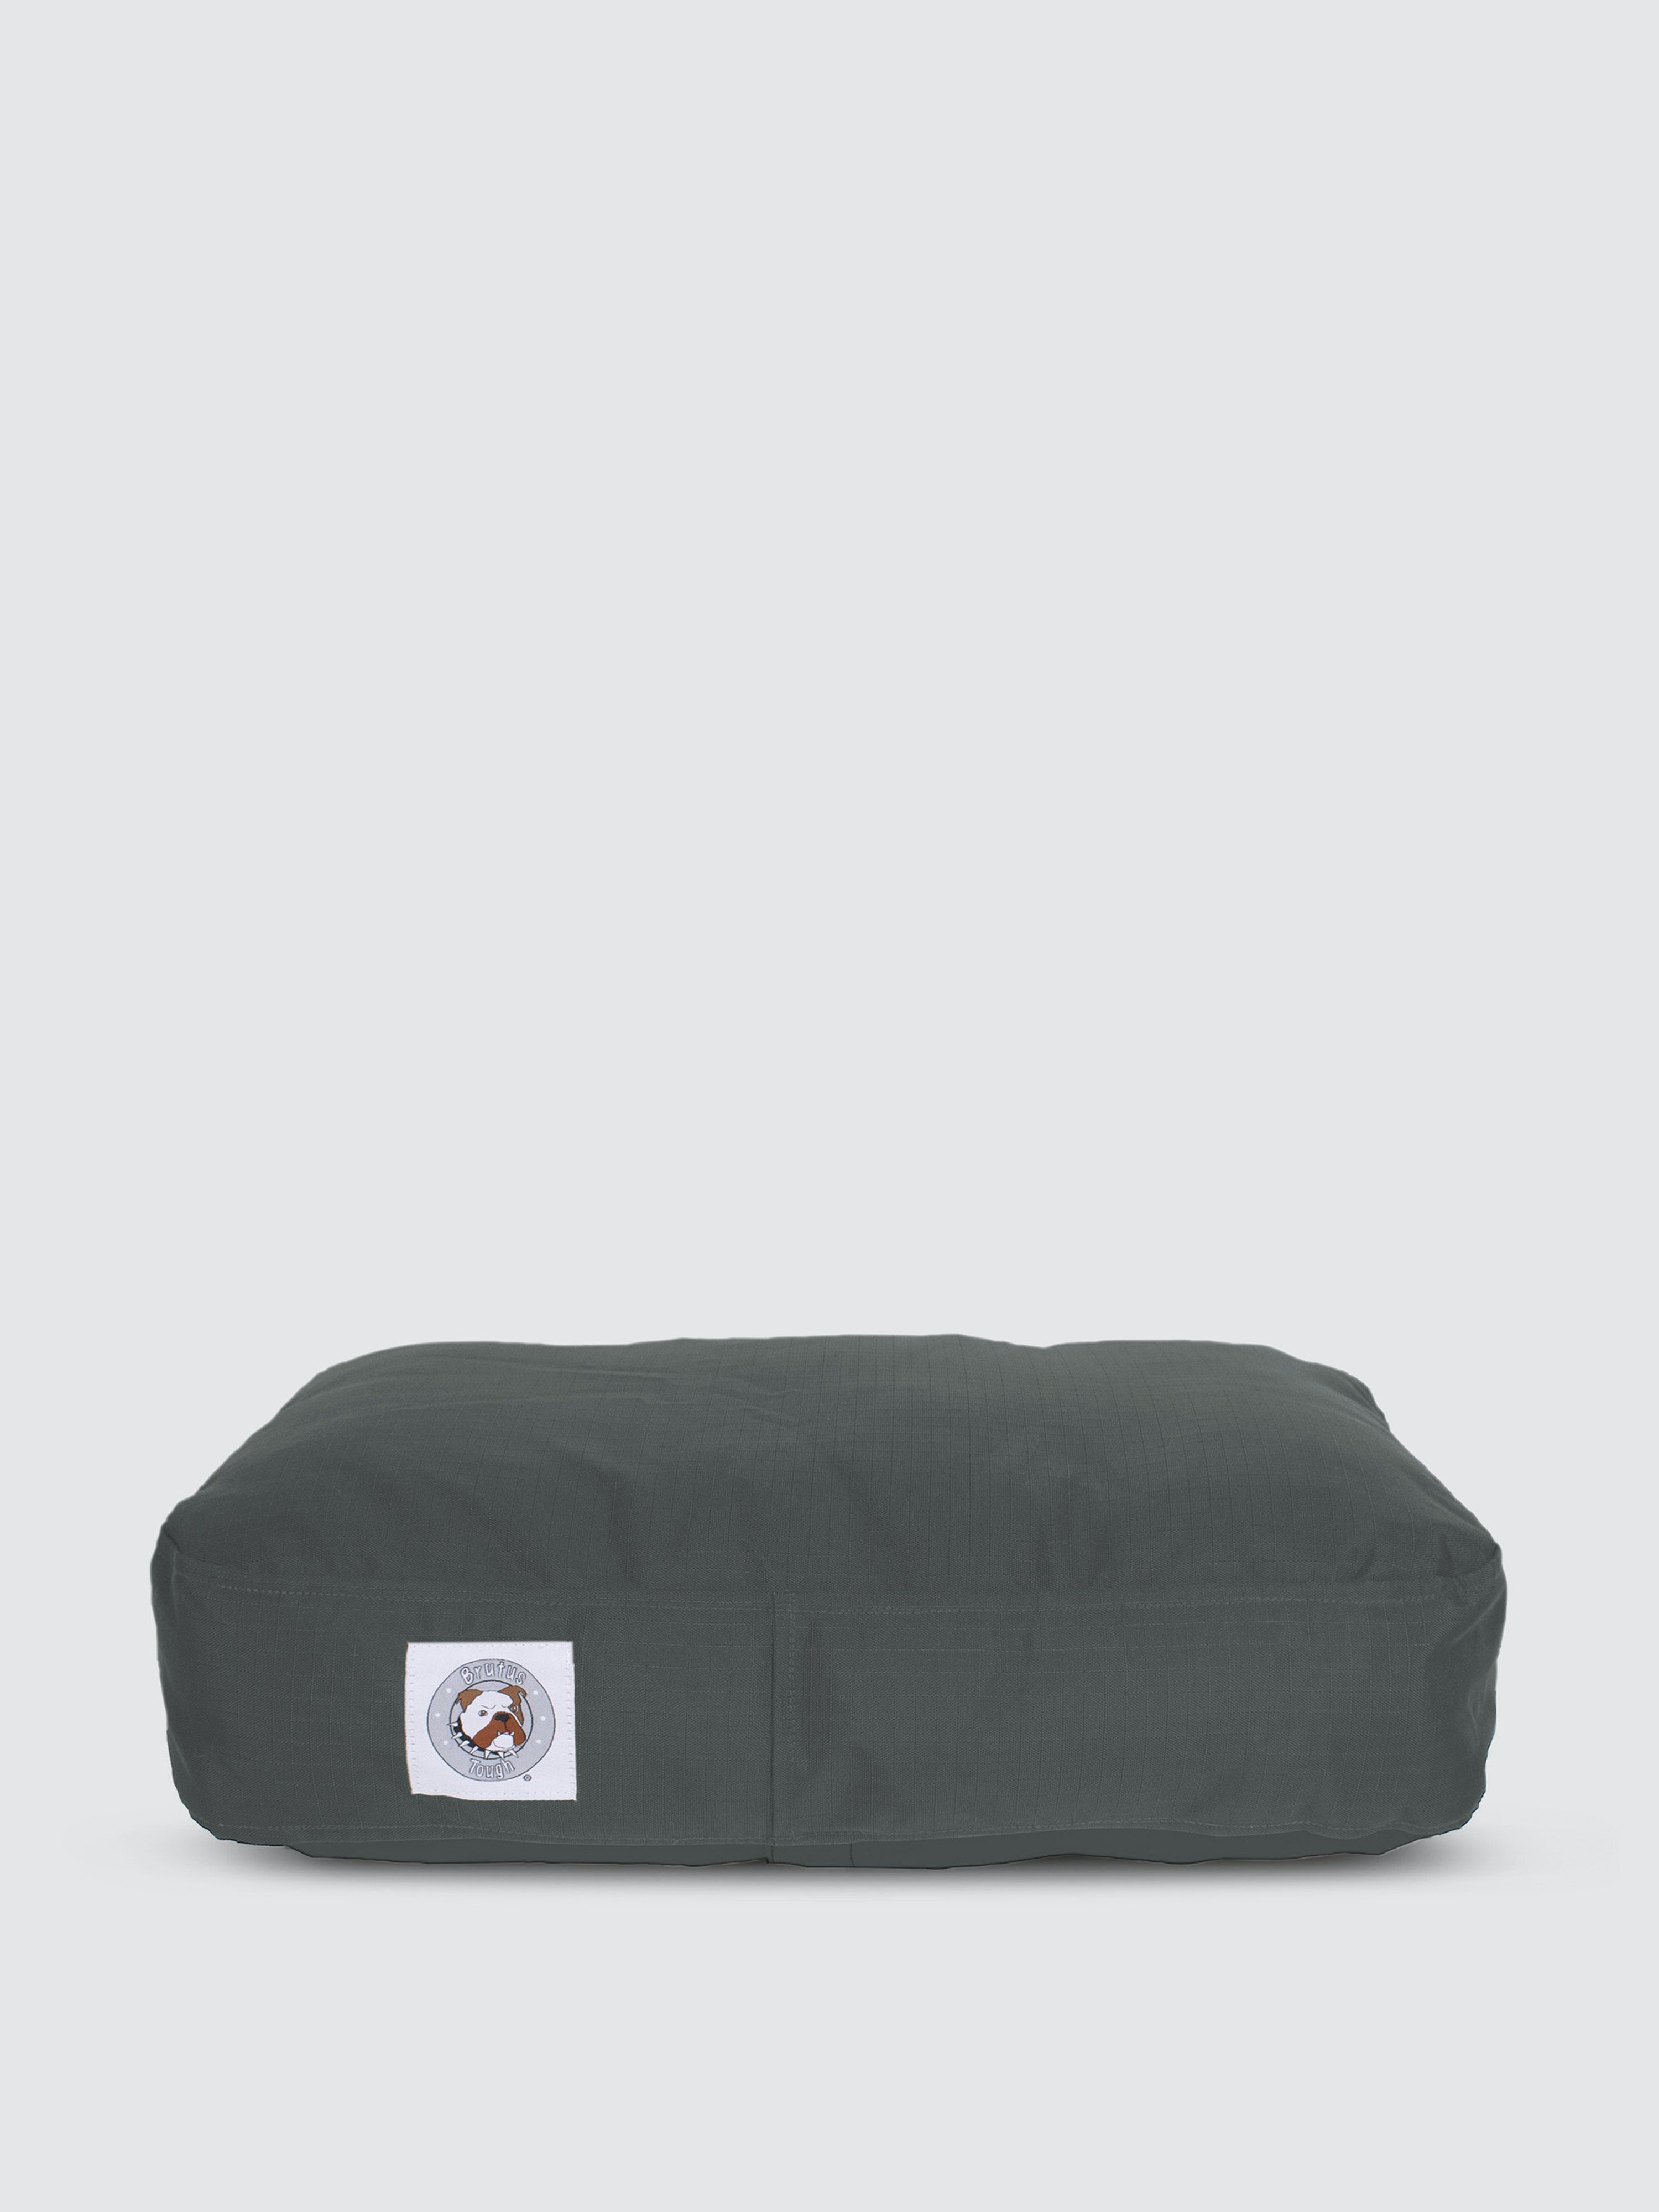 """A bed perfect for new puppies, or dogs that are """"ruff"""" on their beds! Heavy Duty fabric makes this bed BRUTUS TOUGH® for pets who love to scratch and chew. It features hidden zippers and seamless corners – both popular chew points. It's lightweight and easily portable for dogs on the go. Plus it's waterproof, making it great for outdoors and camping trips."""